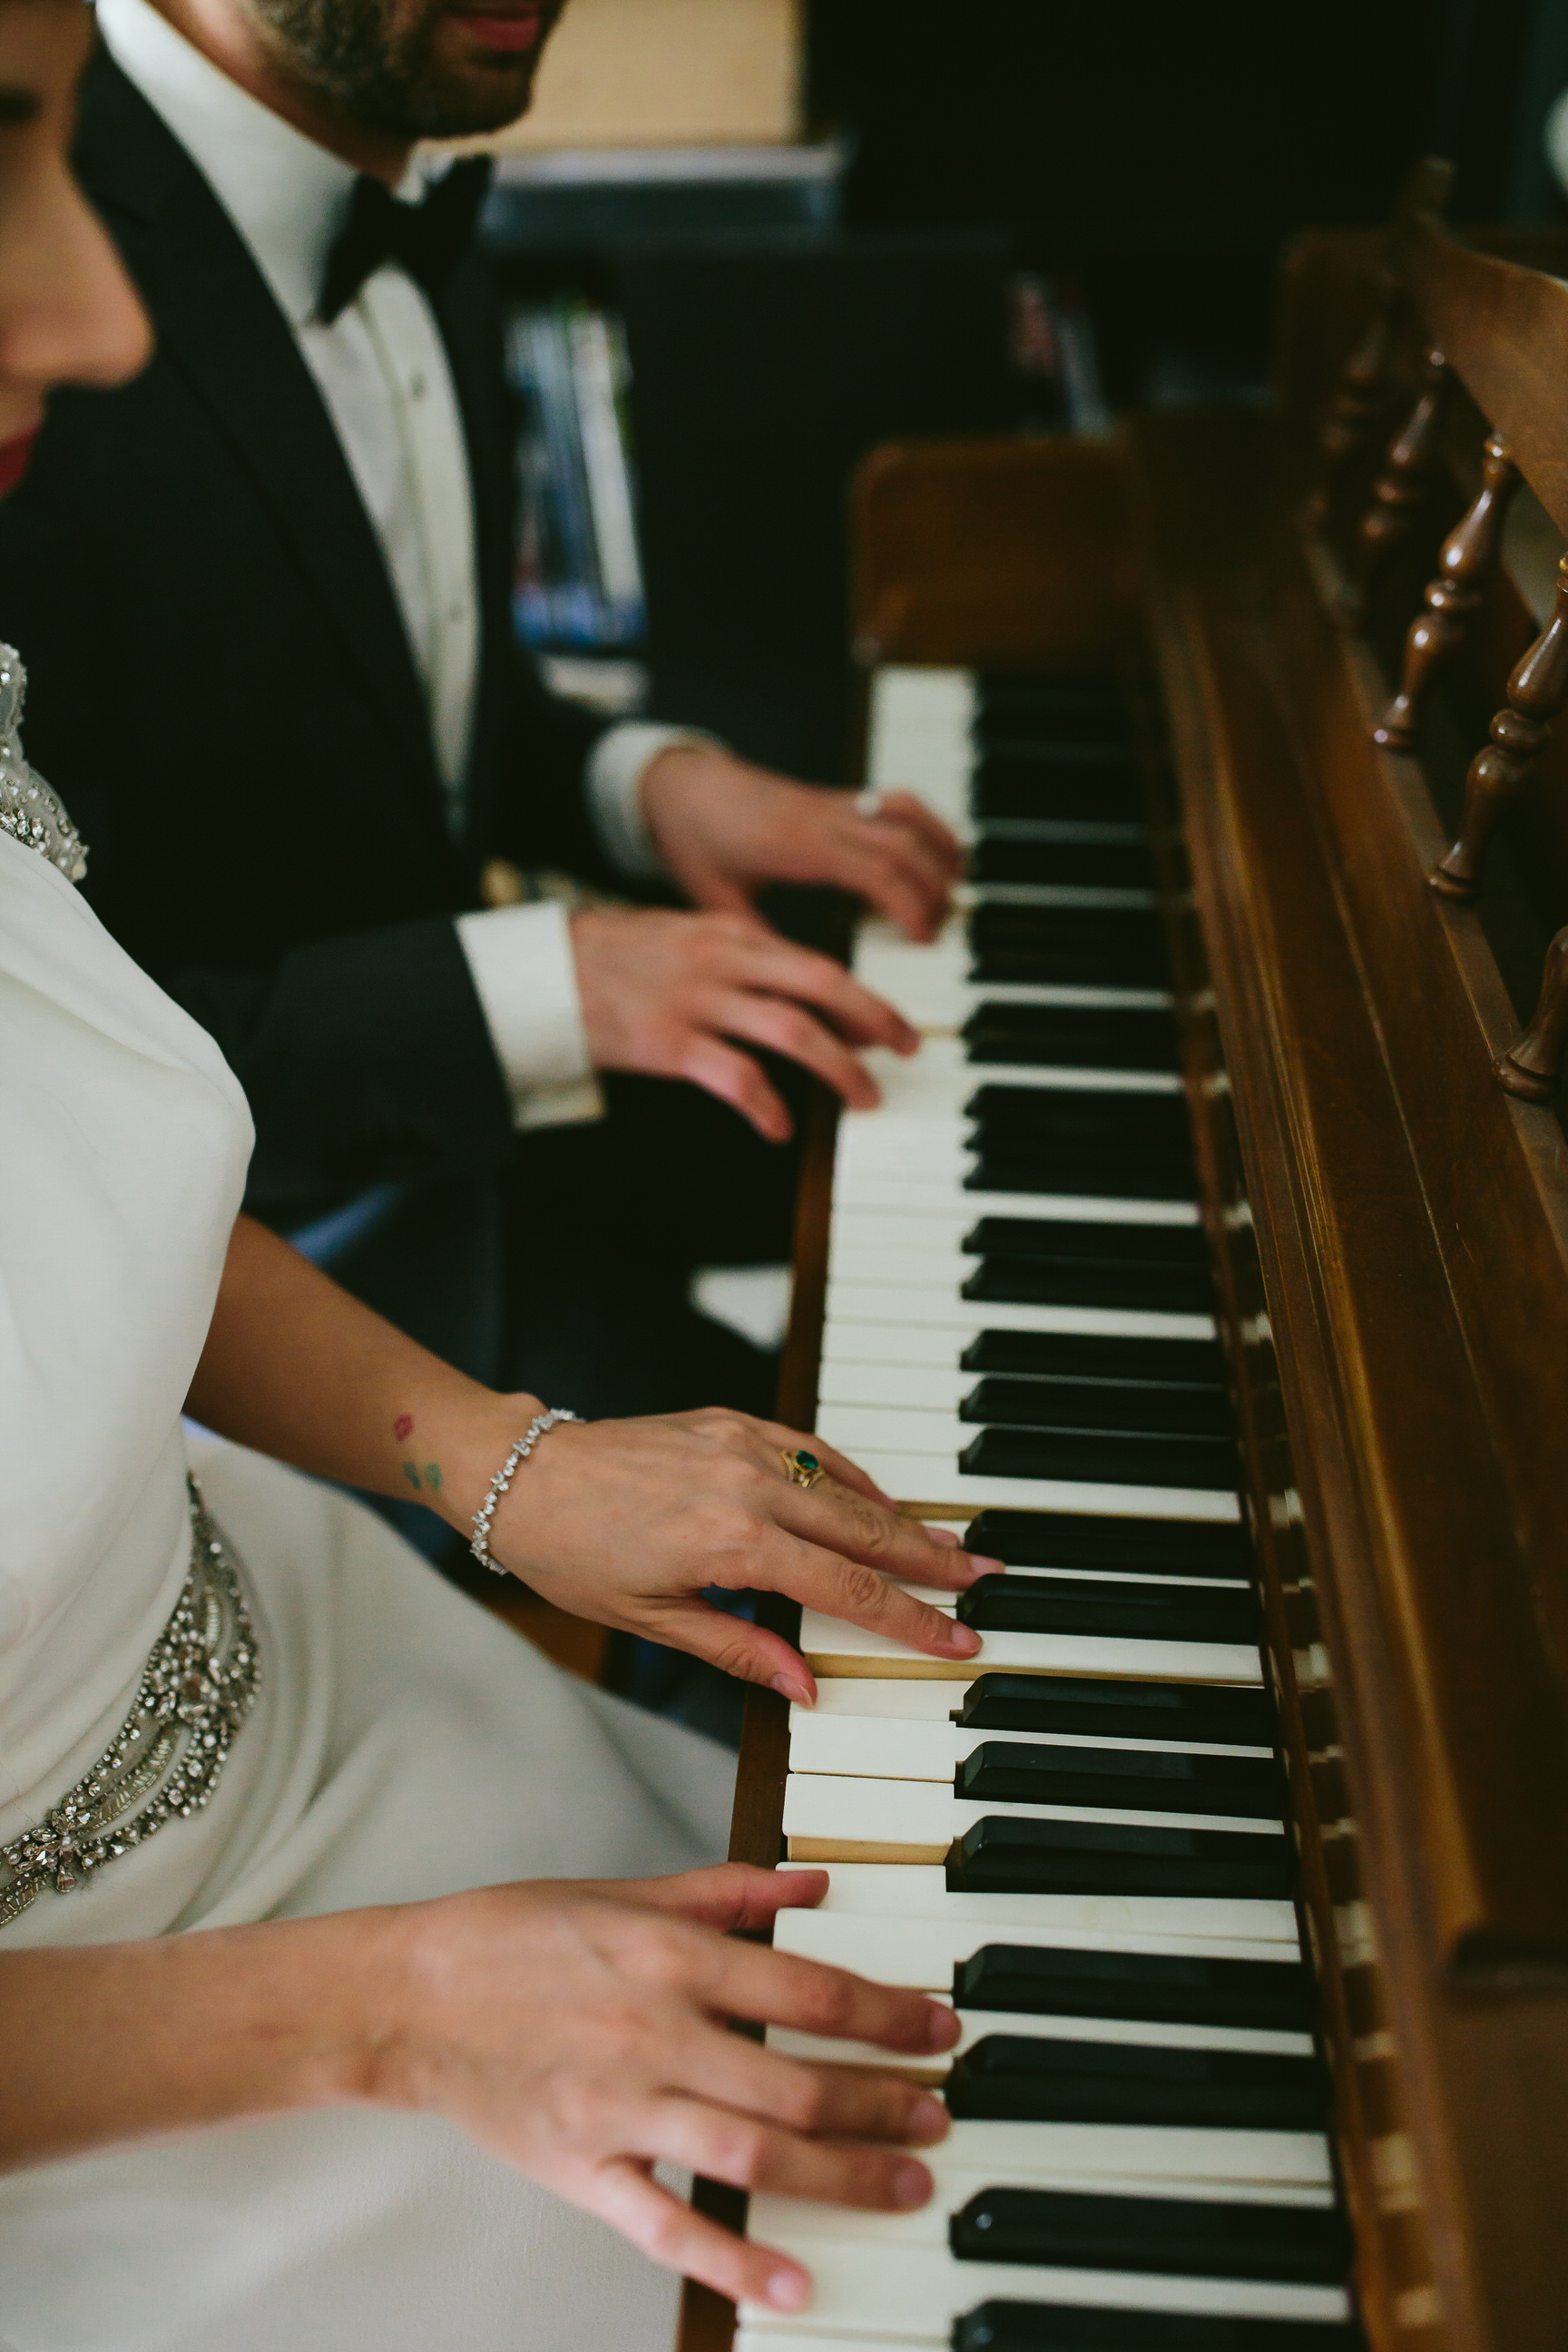 bride_and_groom_in_home_session_wedding_fort_lauderdale_photographer_steph_lynn_photo-17.jpg